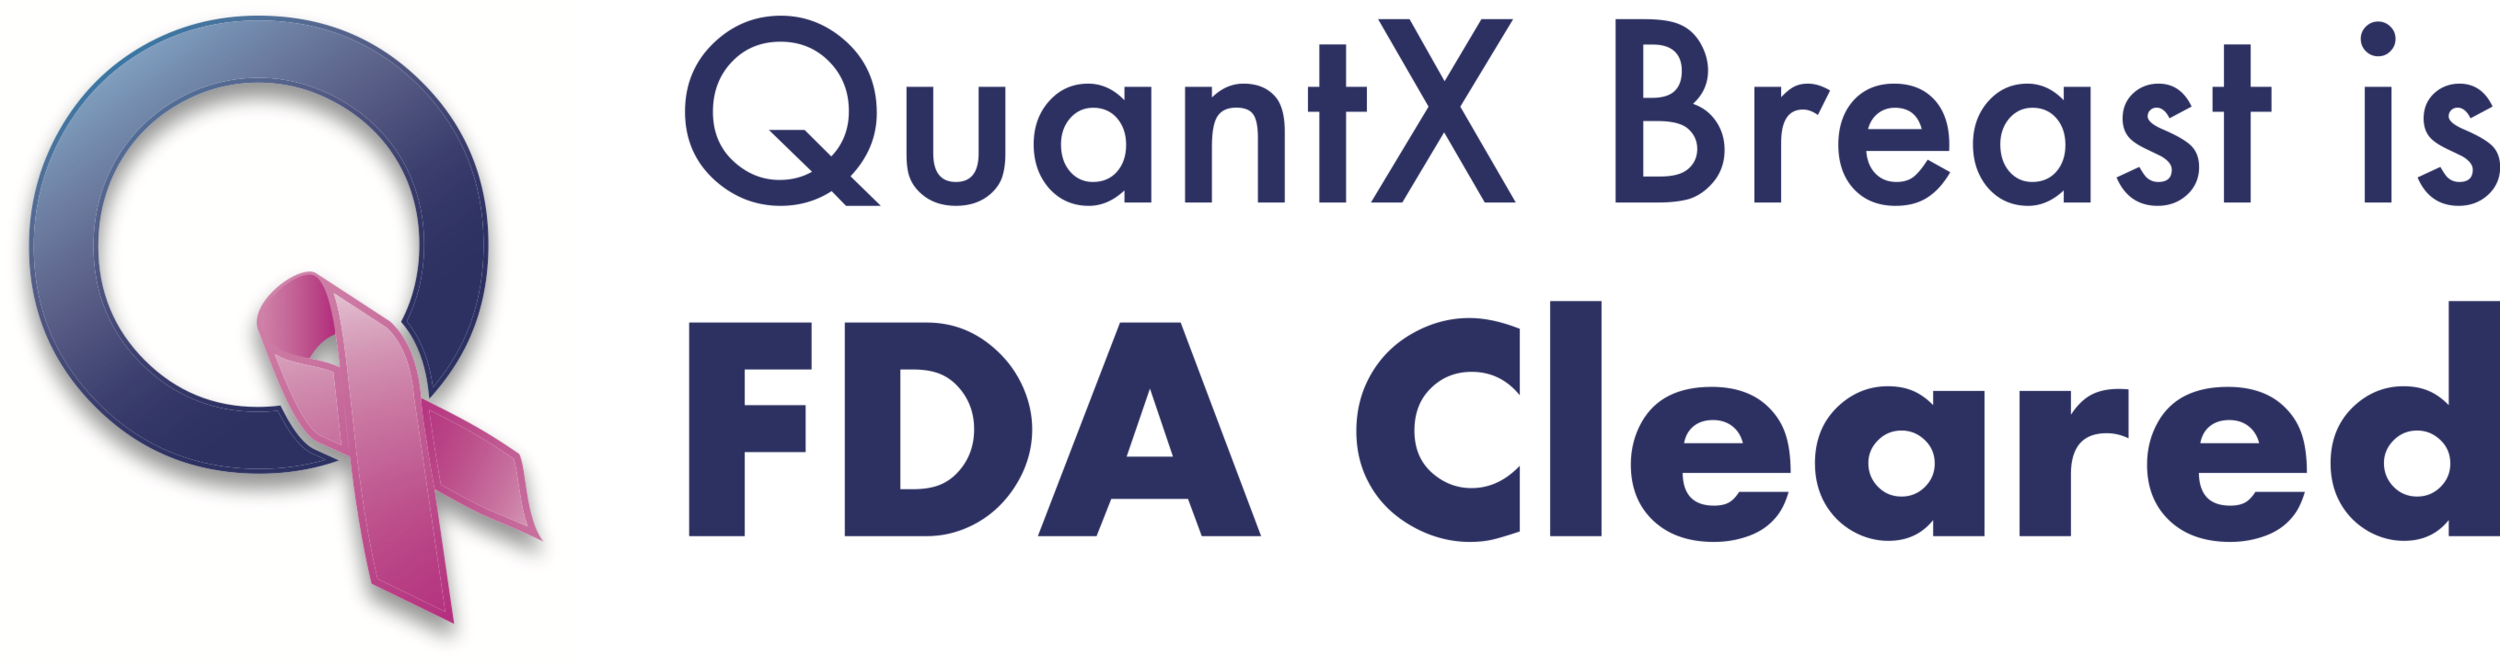 QuantX-FDAcleared.png